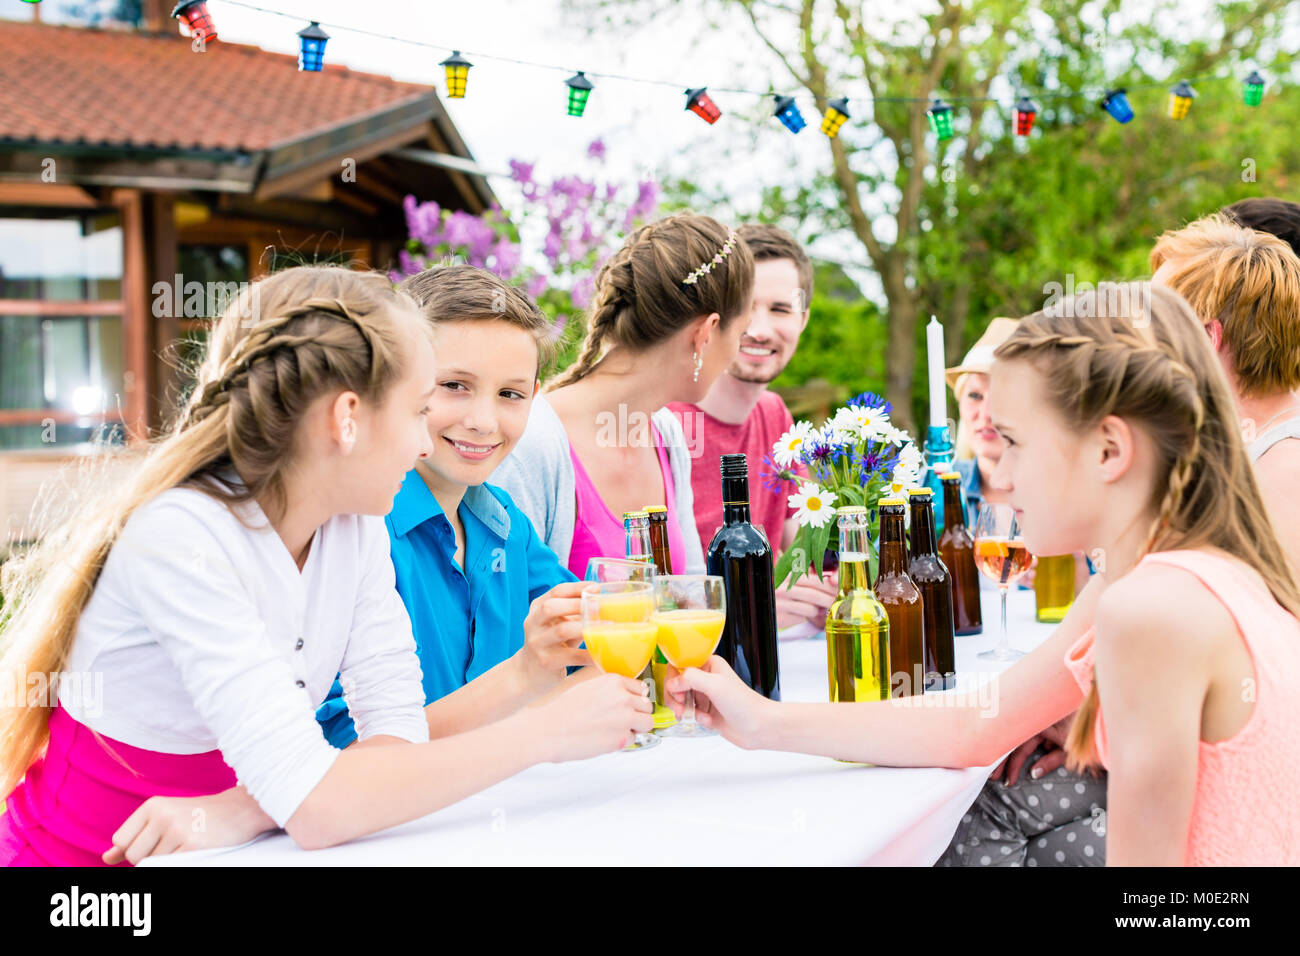 Garden party for family and neighbors  - Stock Image